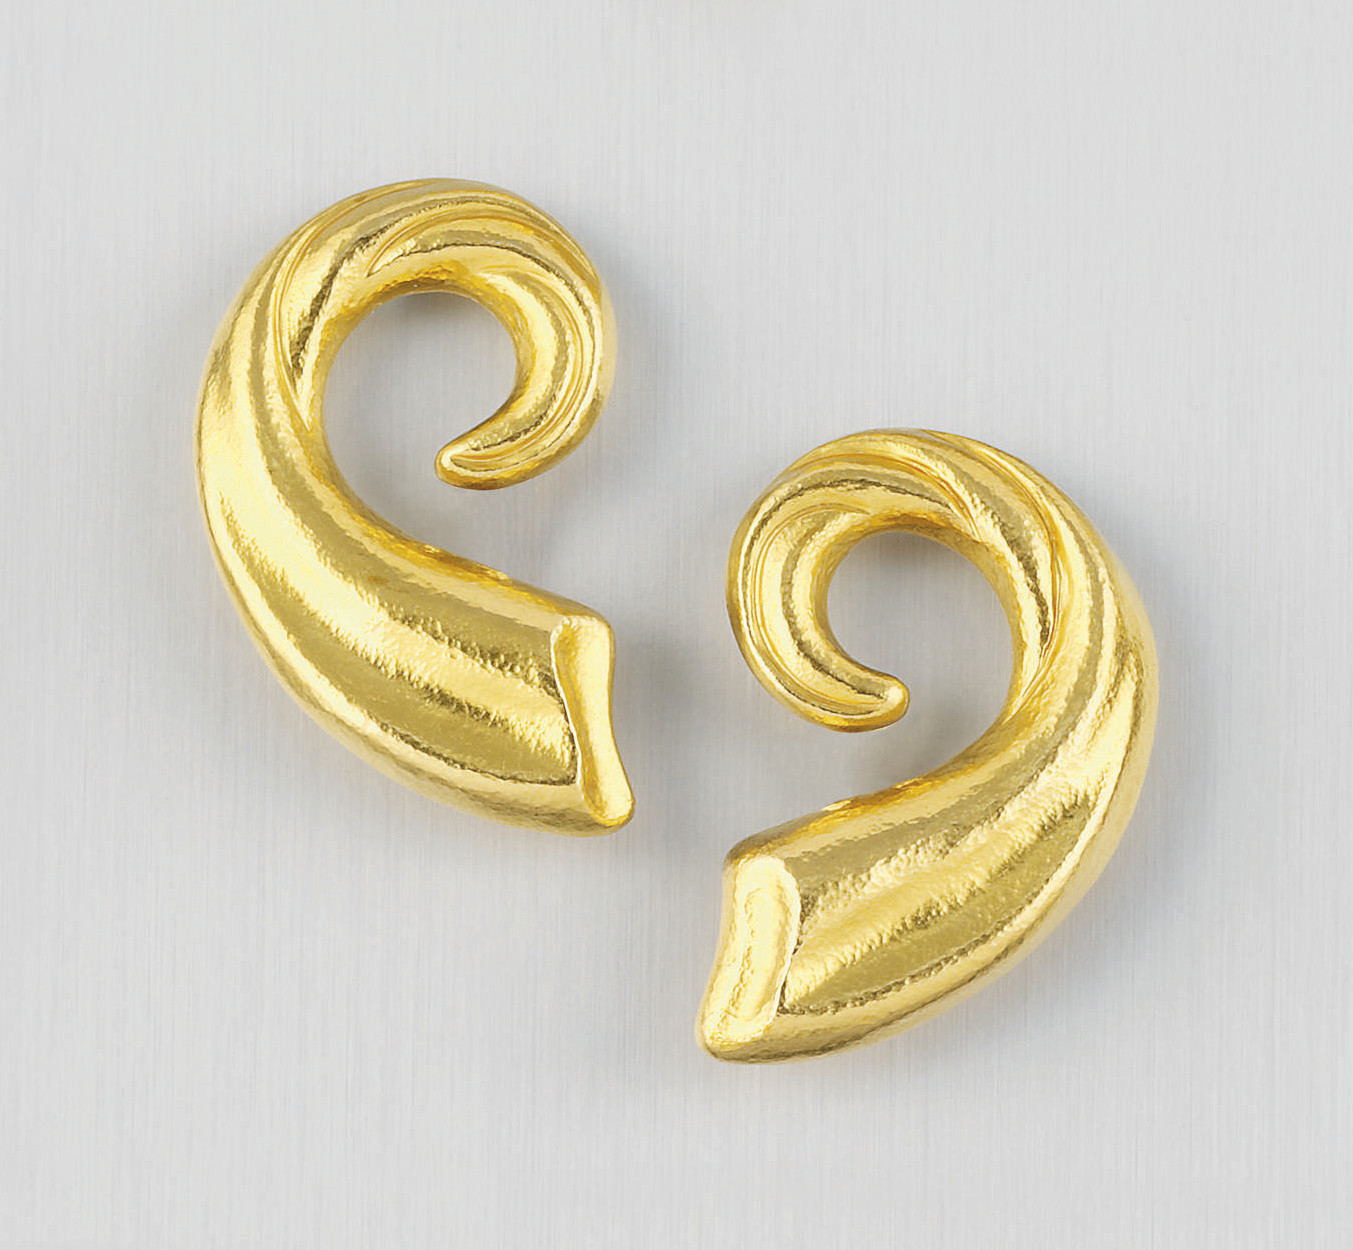 A PAIR OF EARCLIPS, BY LALAOUN